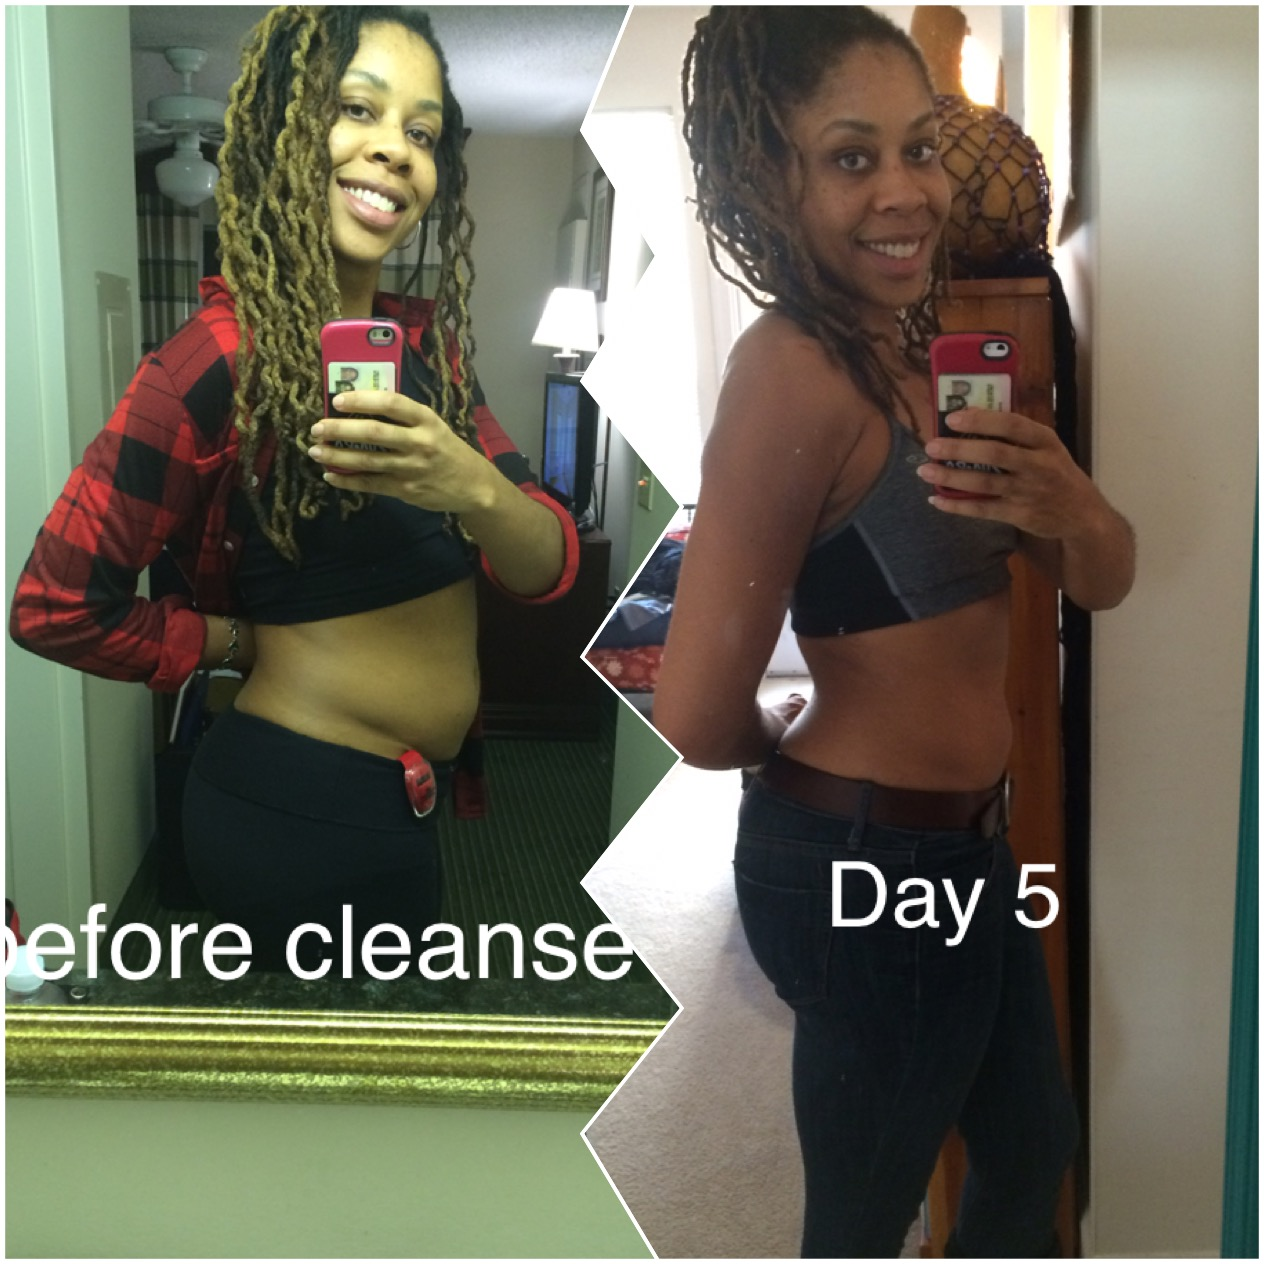 Juicer weight loss results